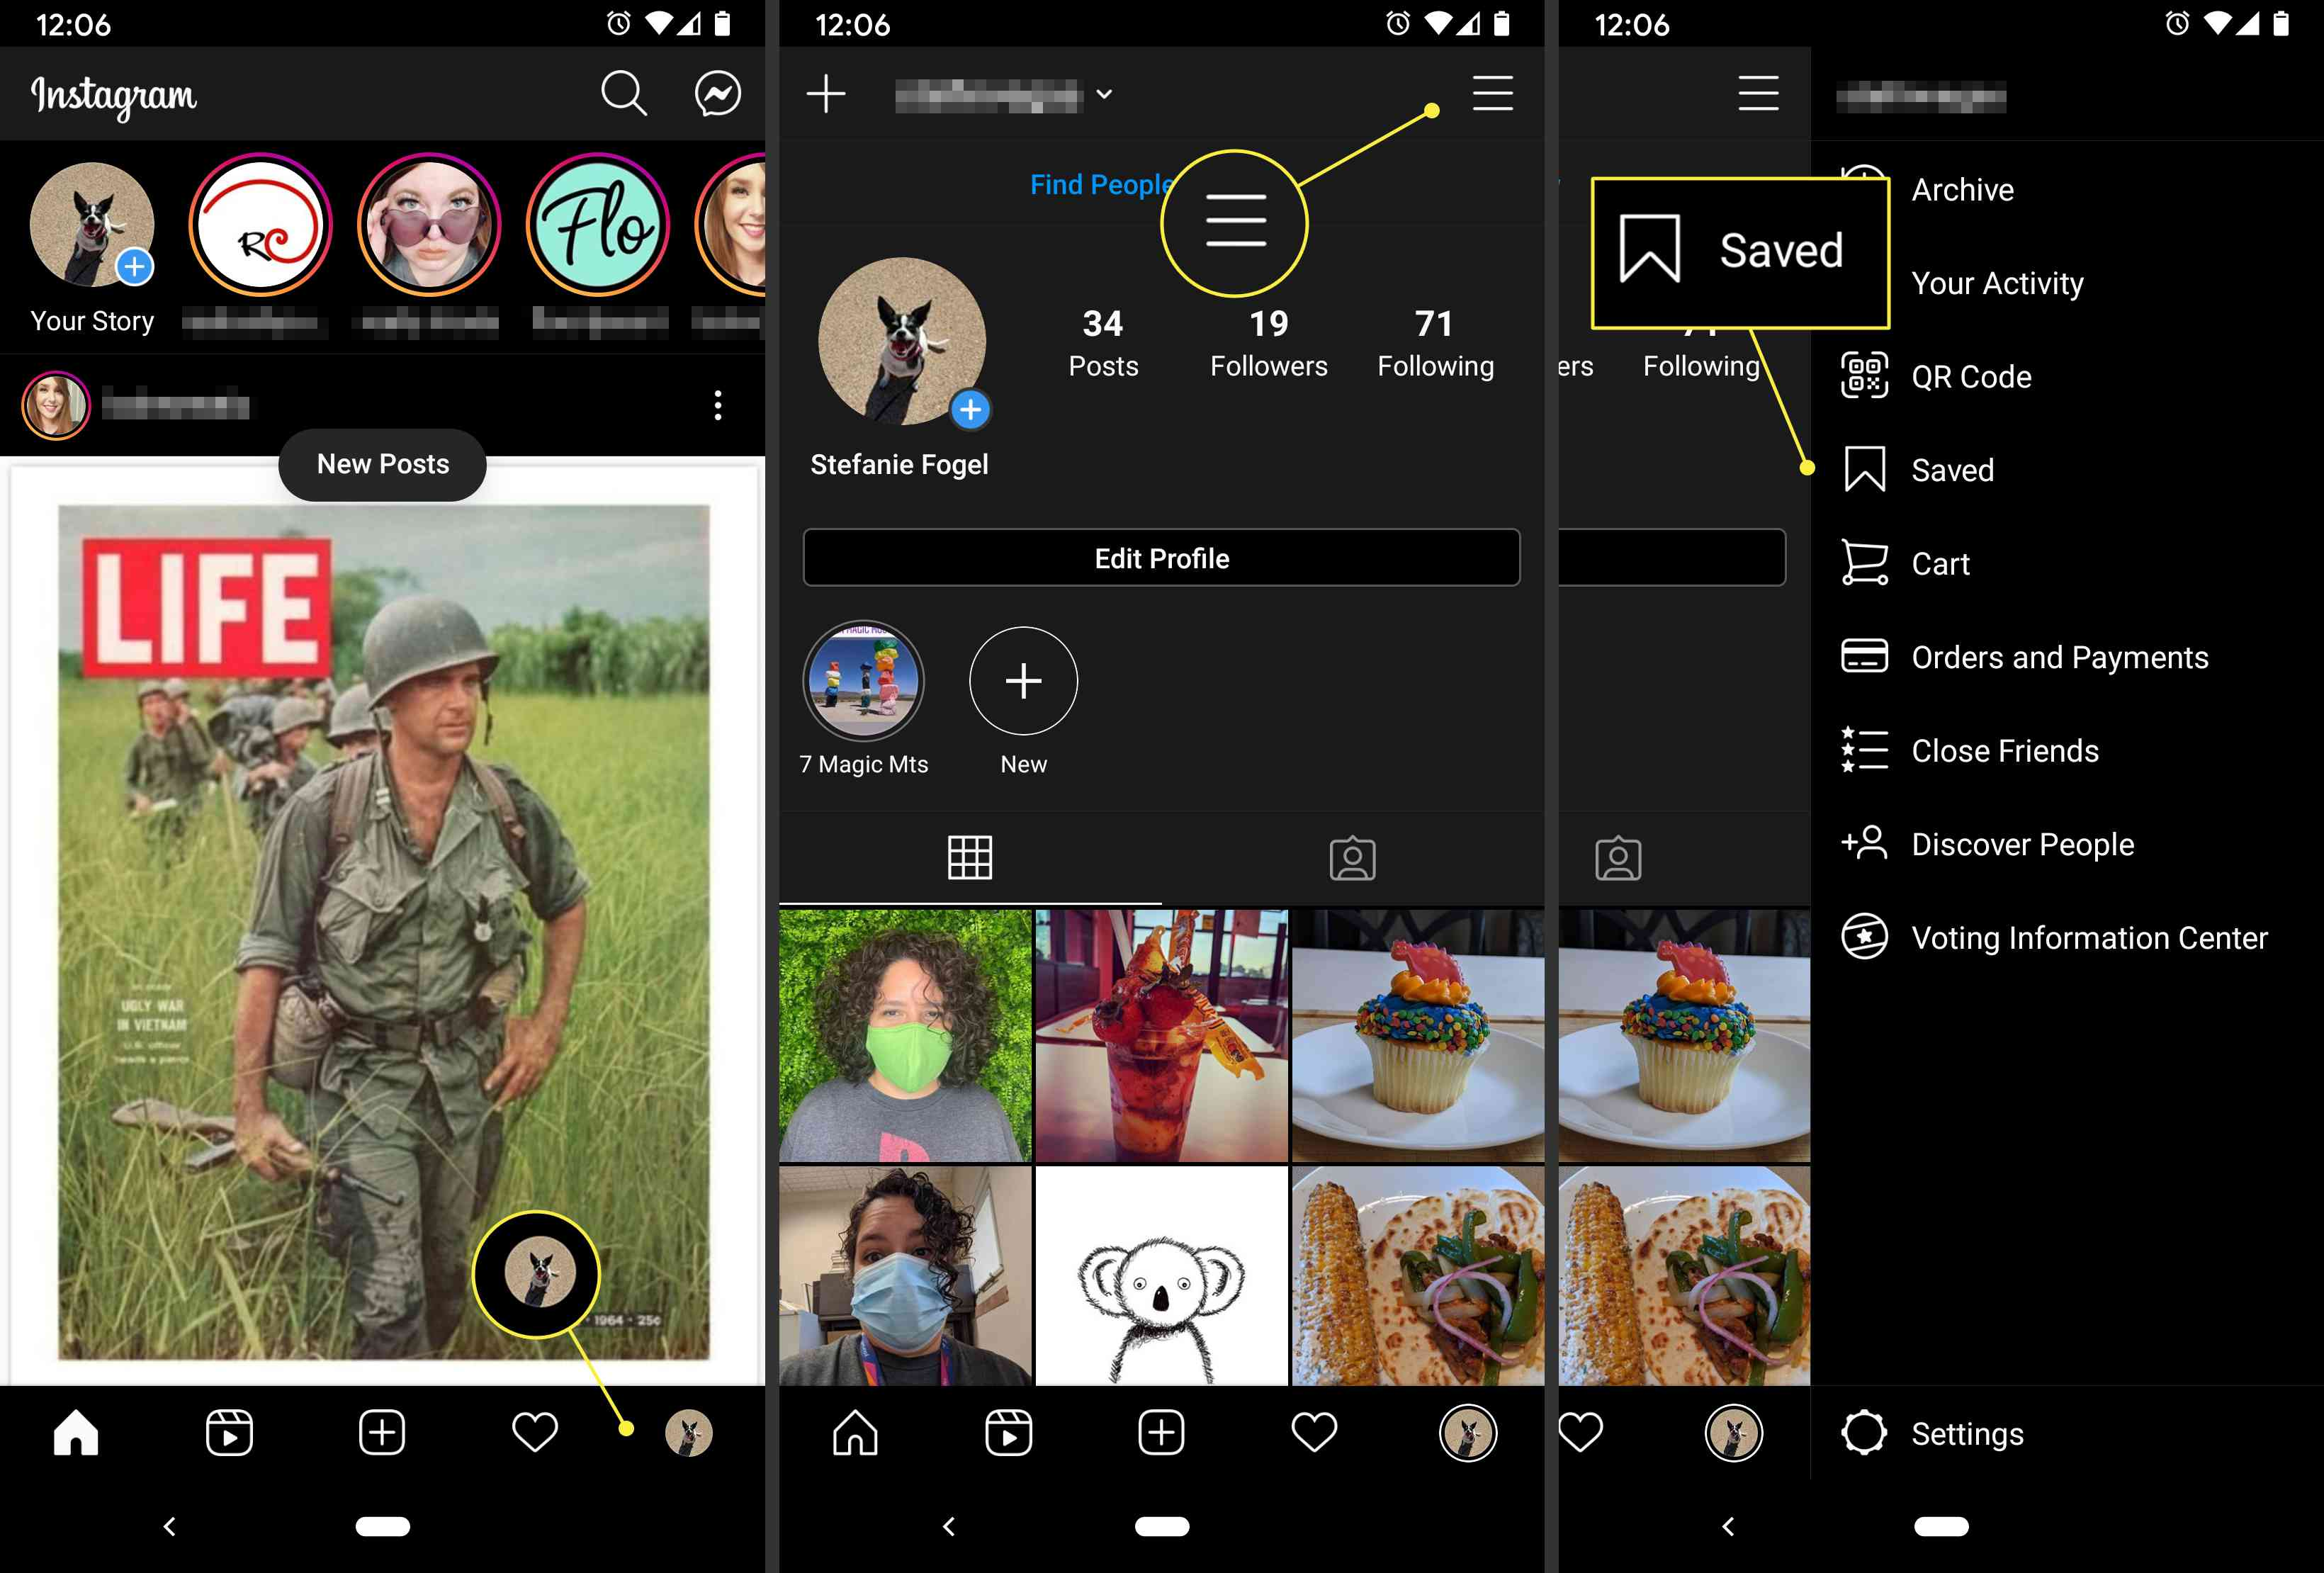 You can access your saved Instagram posts by going to your profile and selecting Saved.